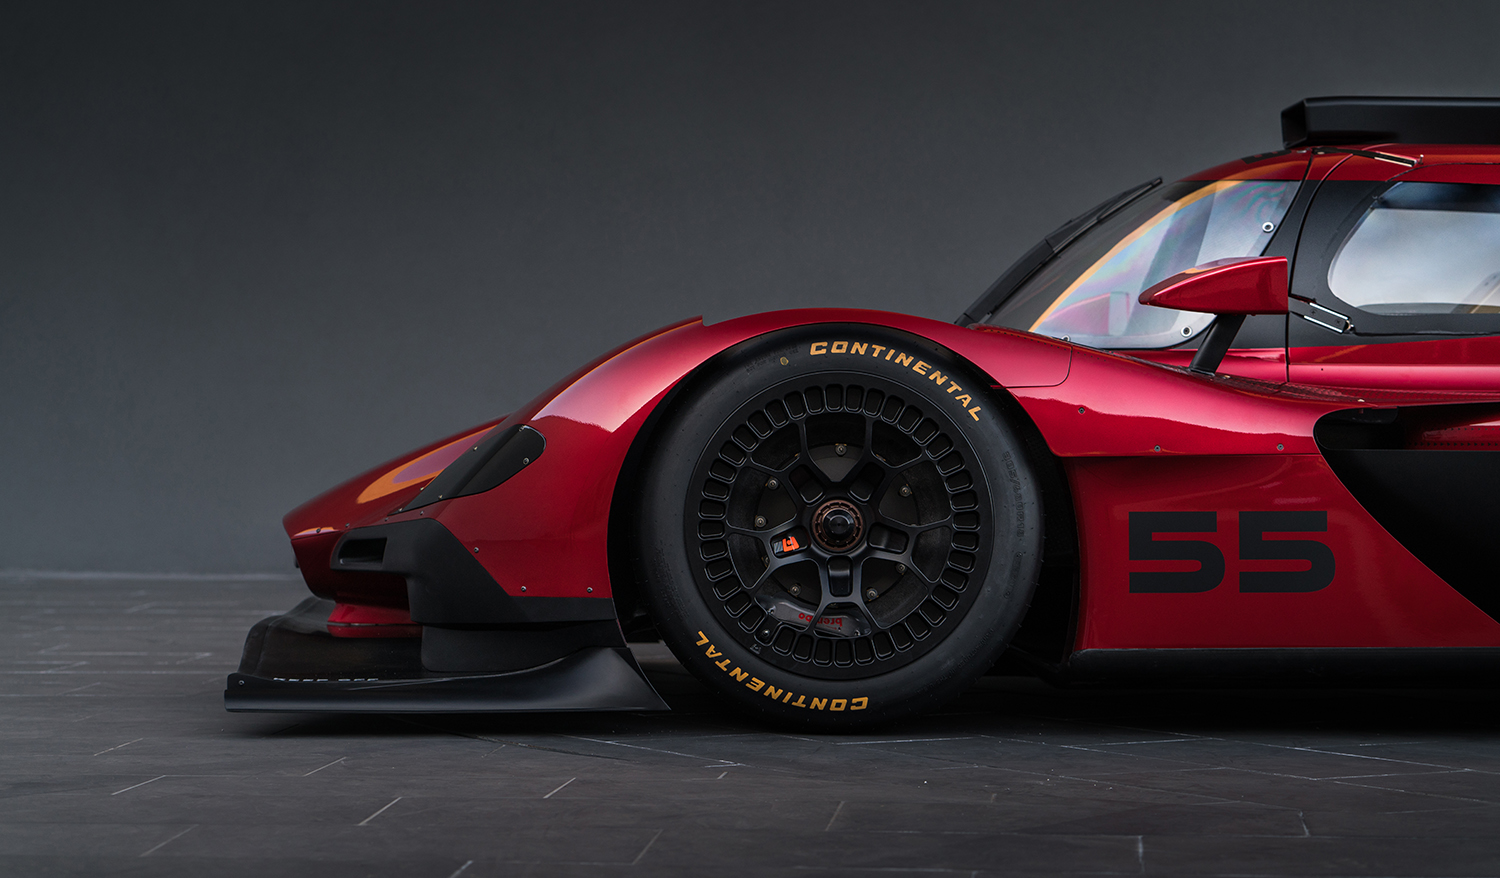 mazda rt24 p le mans racer revealed with 447kw 2 0 litre turbo photos 1 of 9. Black Bedroom Furniture Sets. Home Design Ideas